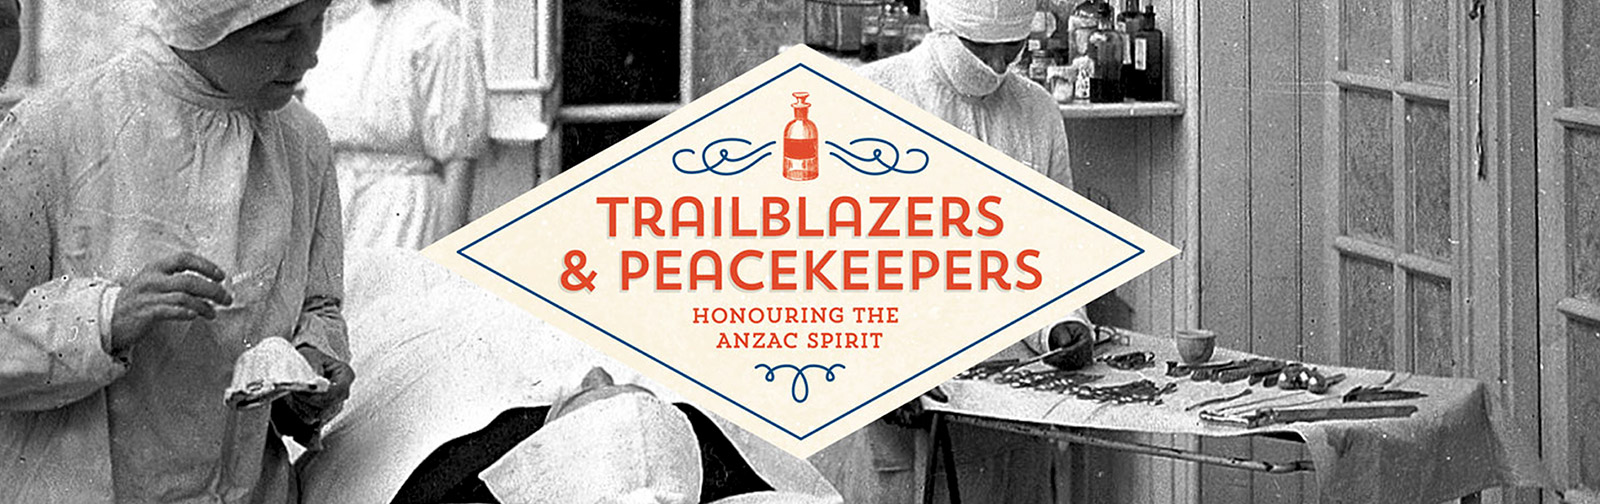 Trailblazers & Peacekeepers - Honouring the ANZAC Spirit